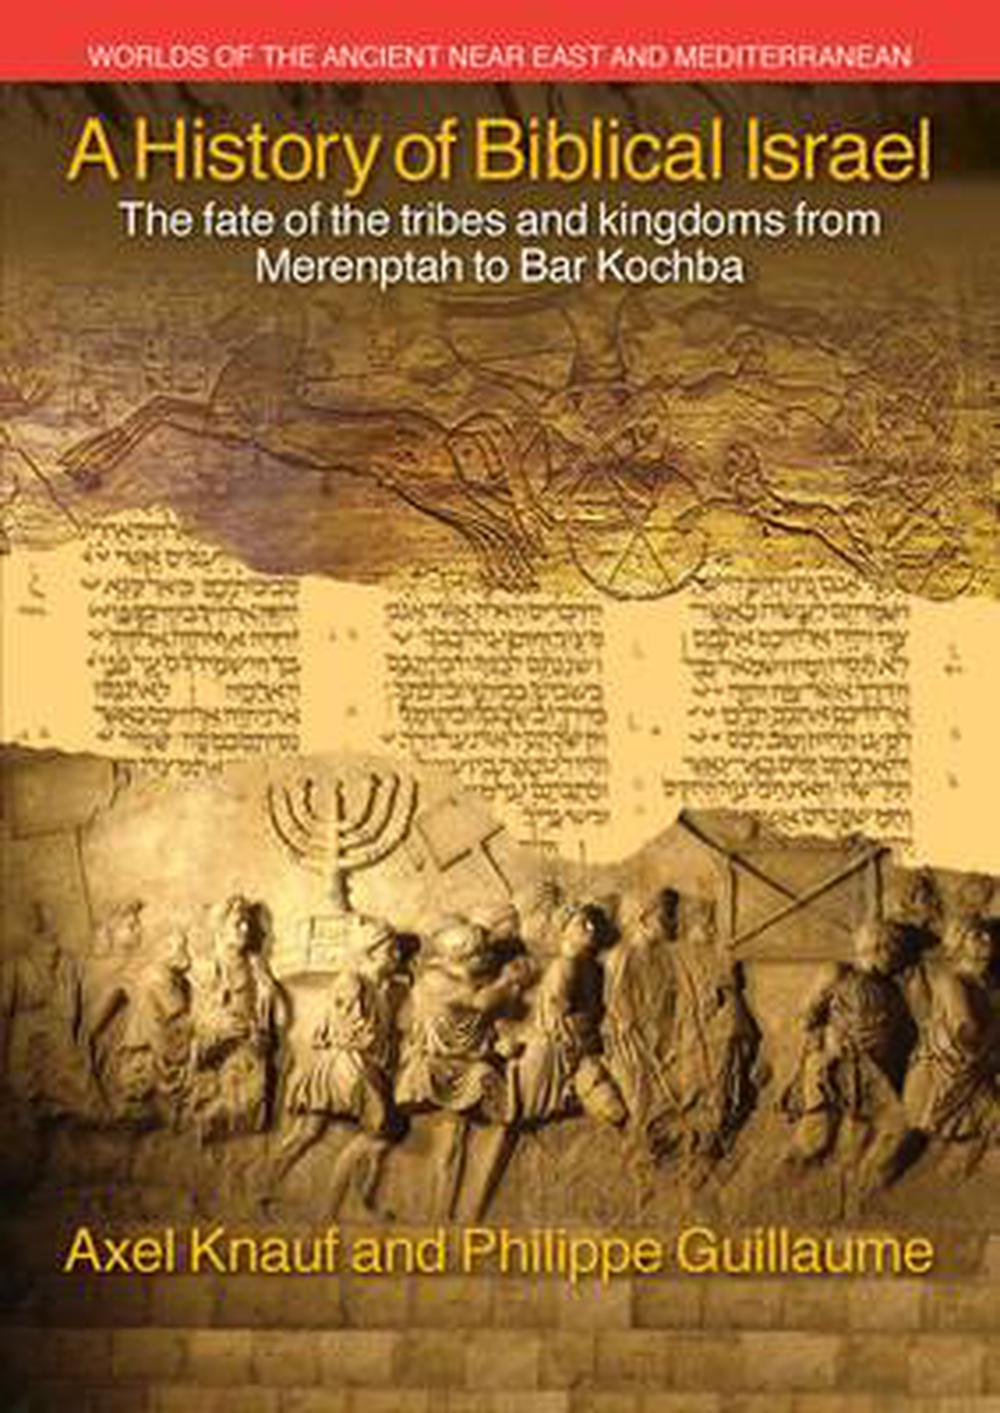 history of biblical israel by philippe guillaume  english